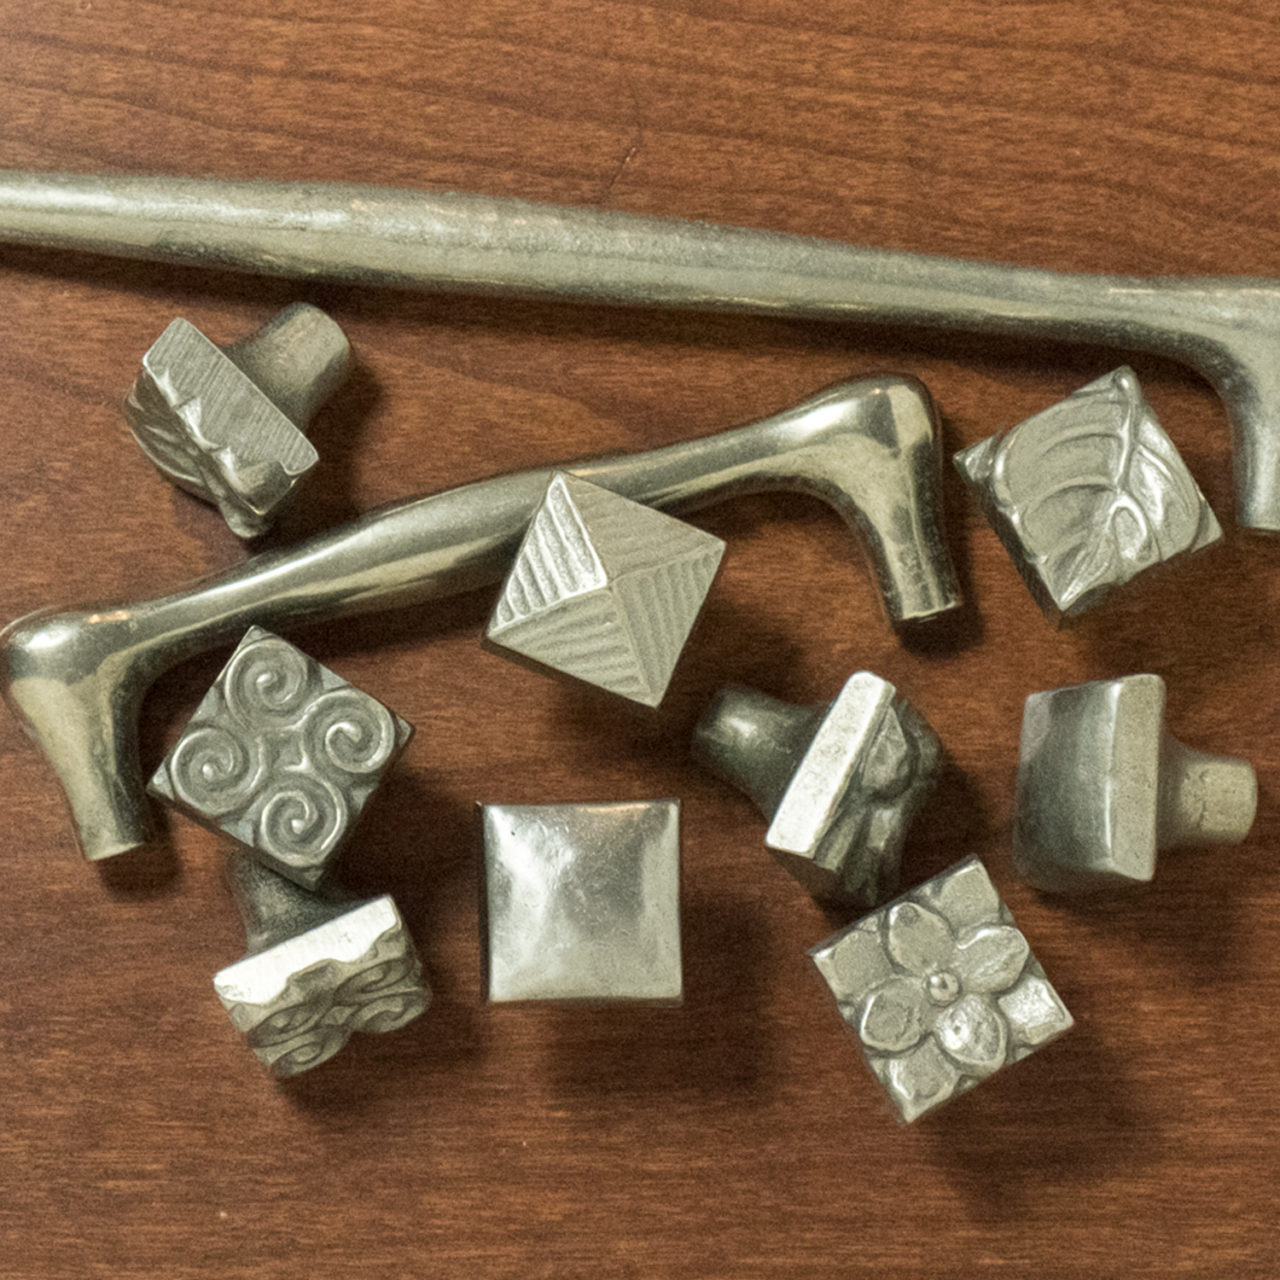 Foundry Art bronze accent knobs and pulls on wood